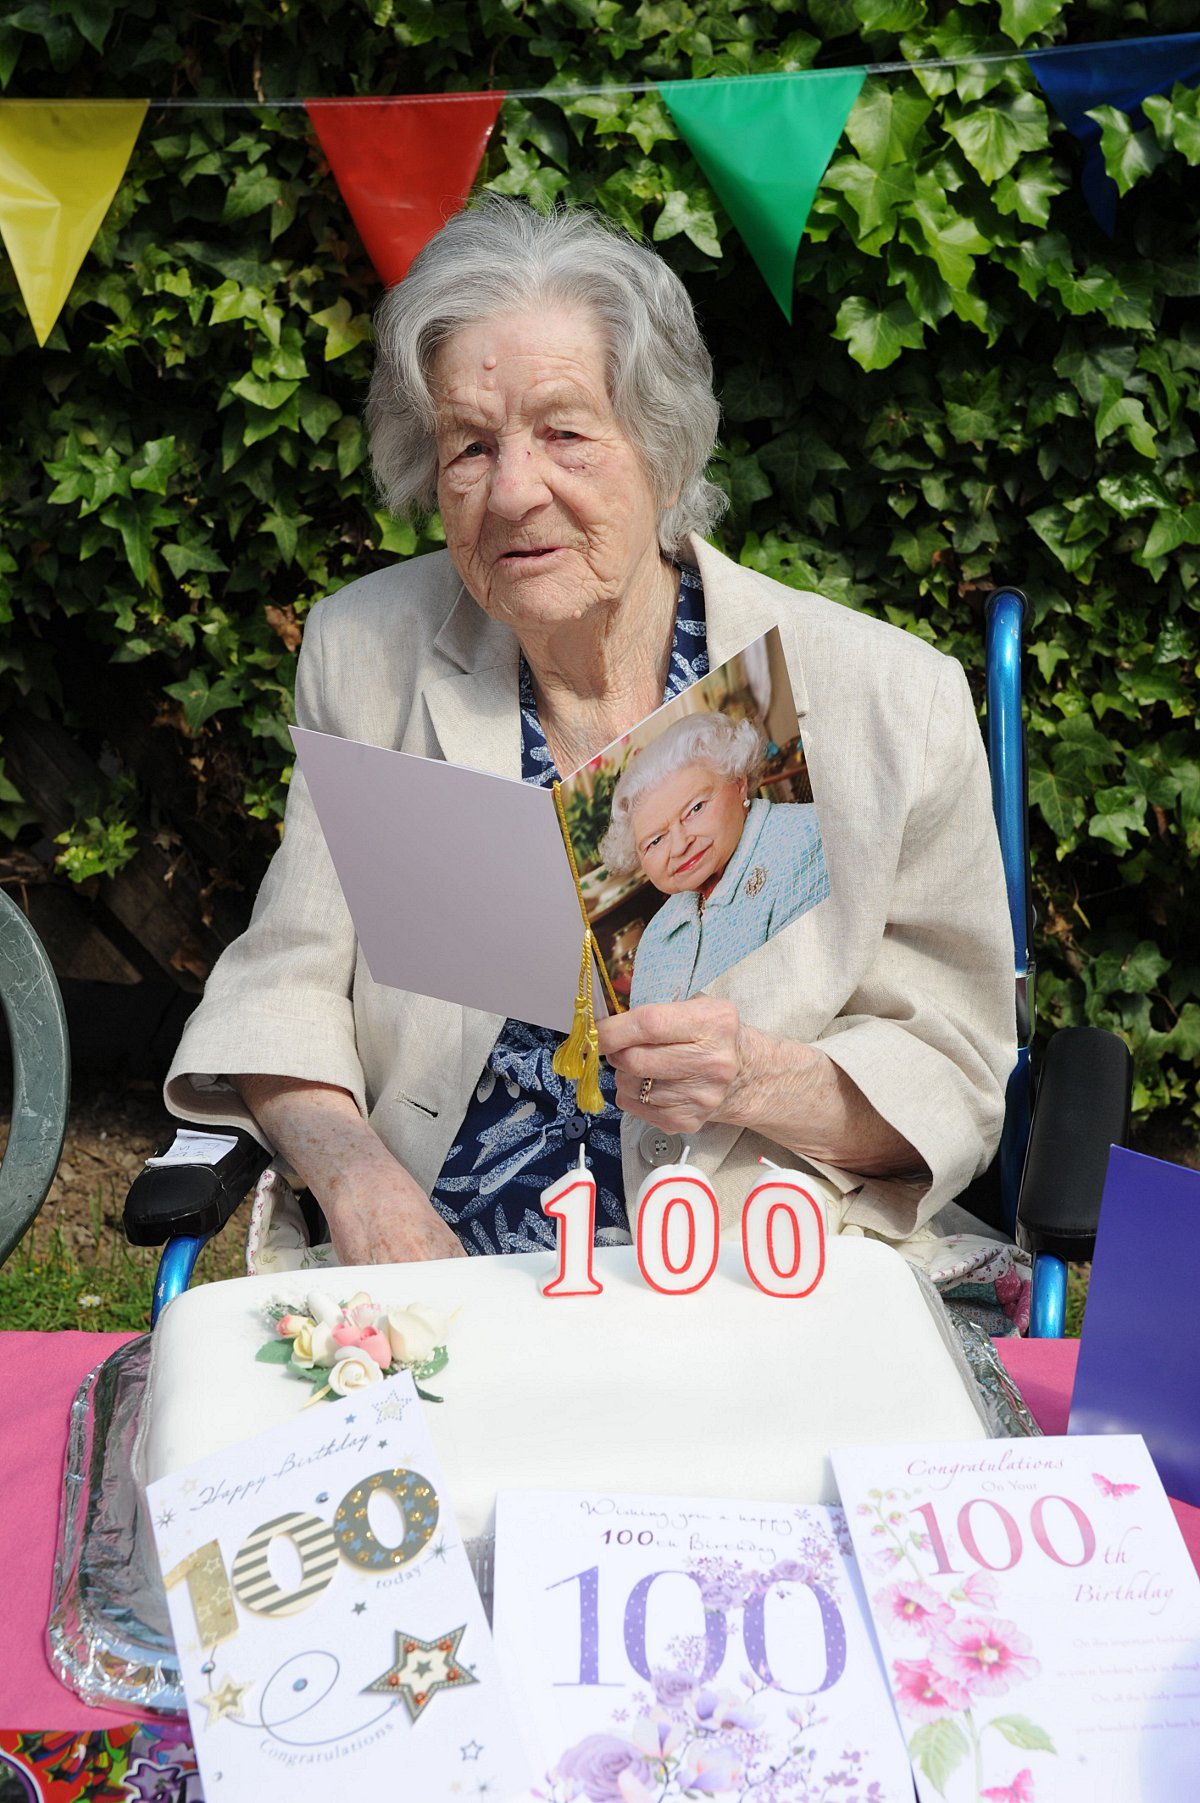 Great-great-great grandmother celebrates 100 years